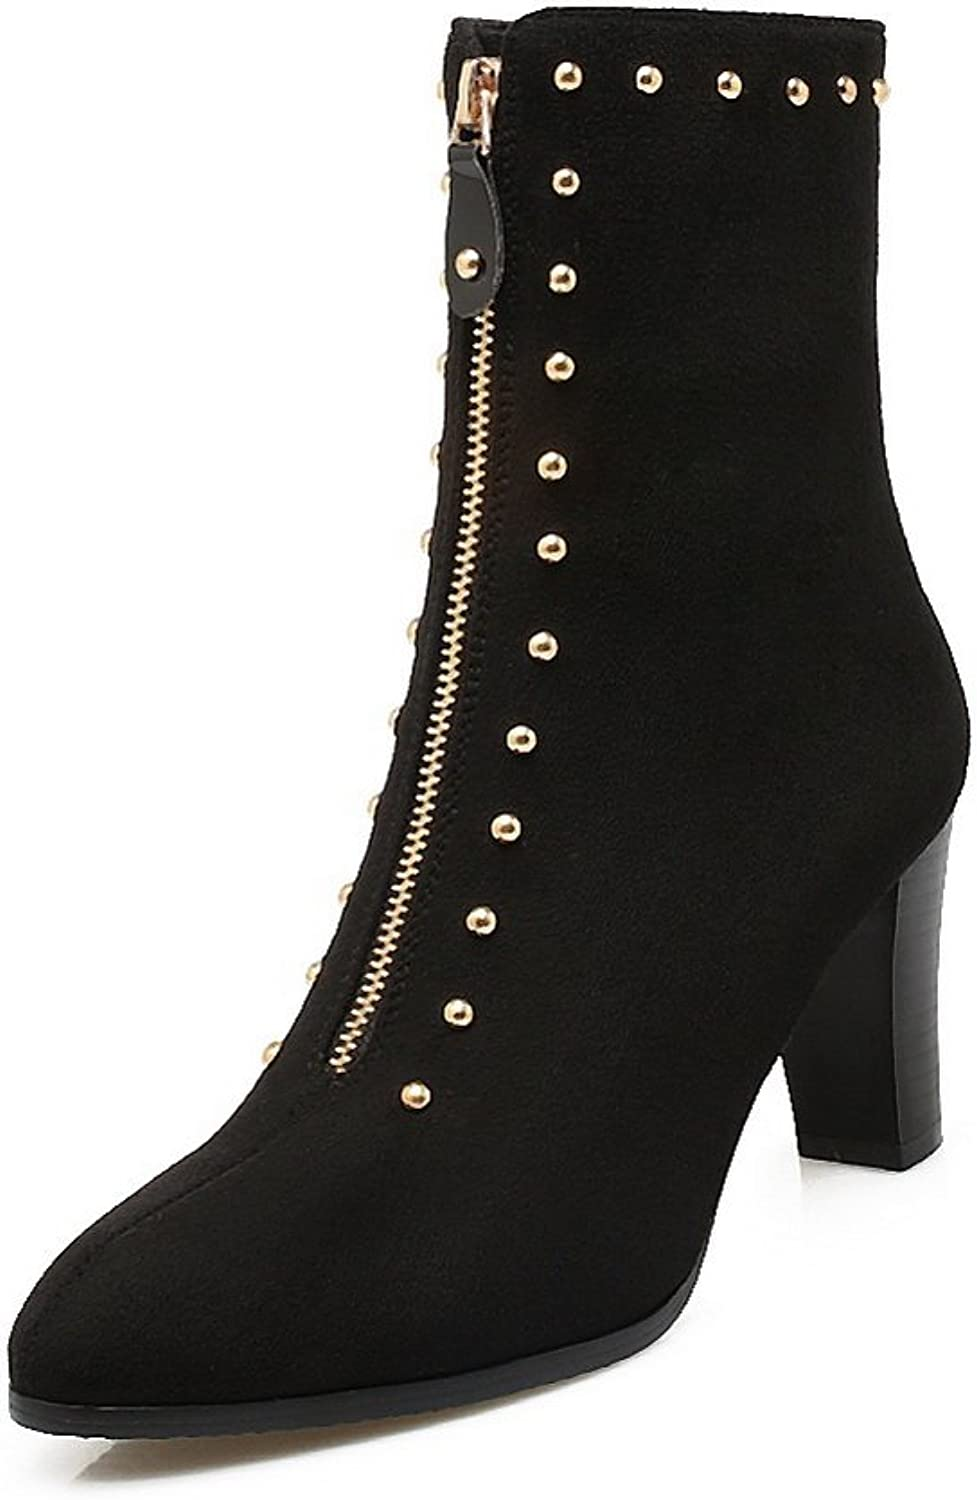 BalaMasa Womens Studded High-Heel Zipper Pointed-Toe Closed-Toe Black Urethane Boots ABL09805 - 8 B(M) US